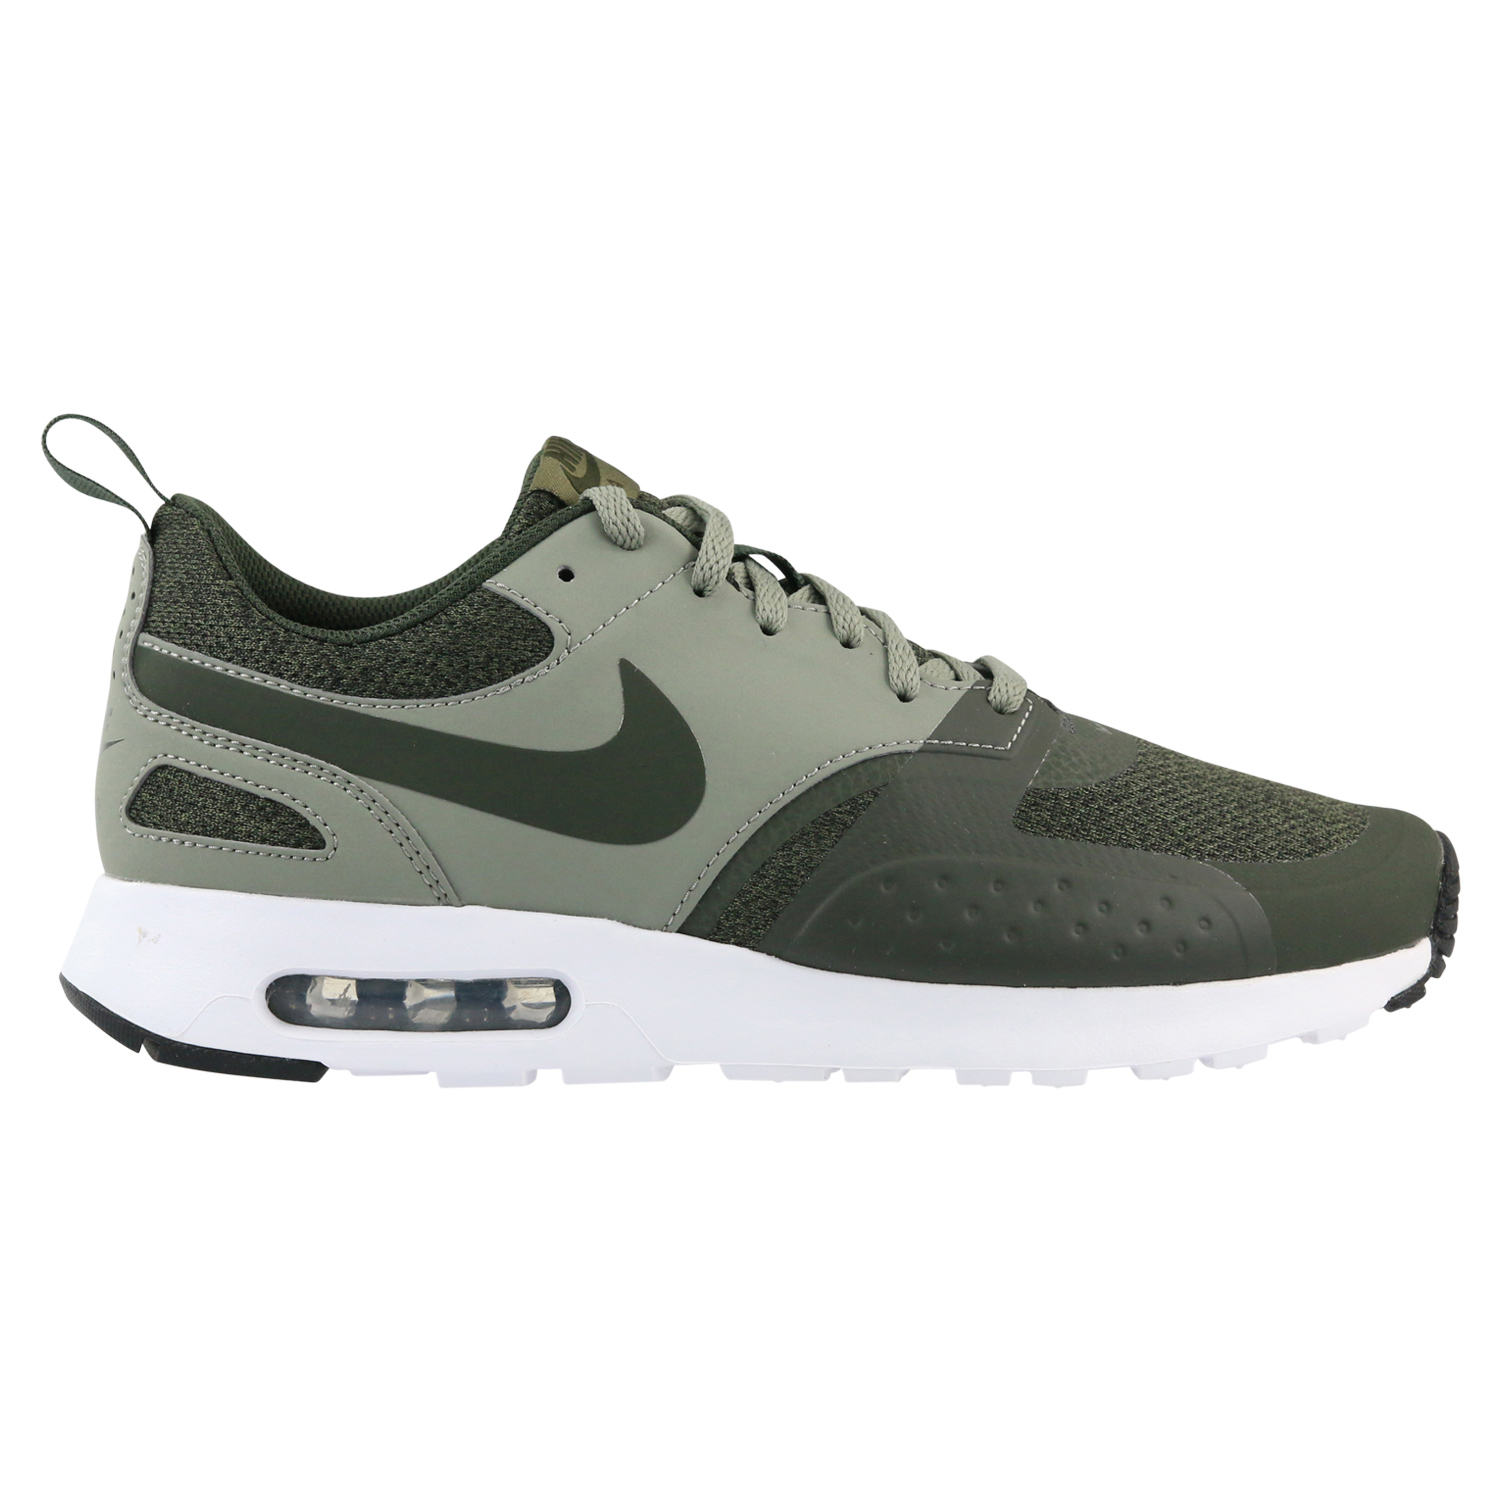 nike air max vision herren sneaker schuhe turnschuhe tavas 918230 ebay. Black Bedroom Furniture Sets. Home Design Ideas